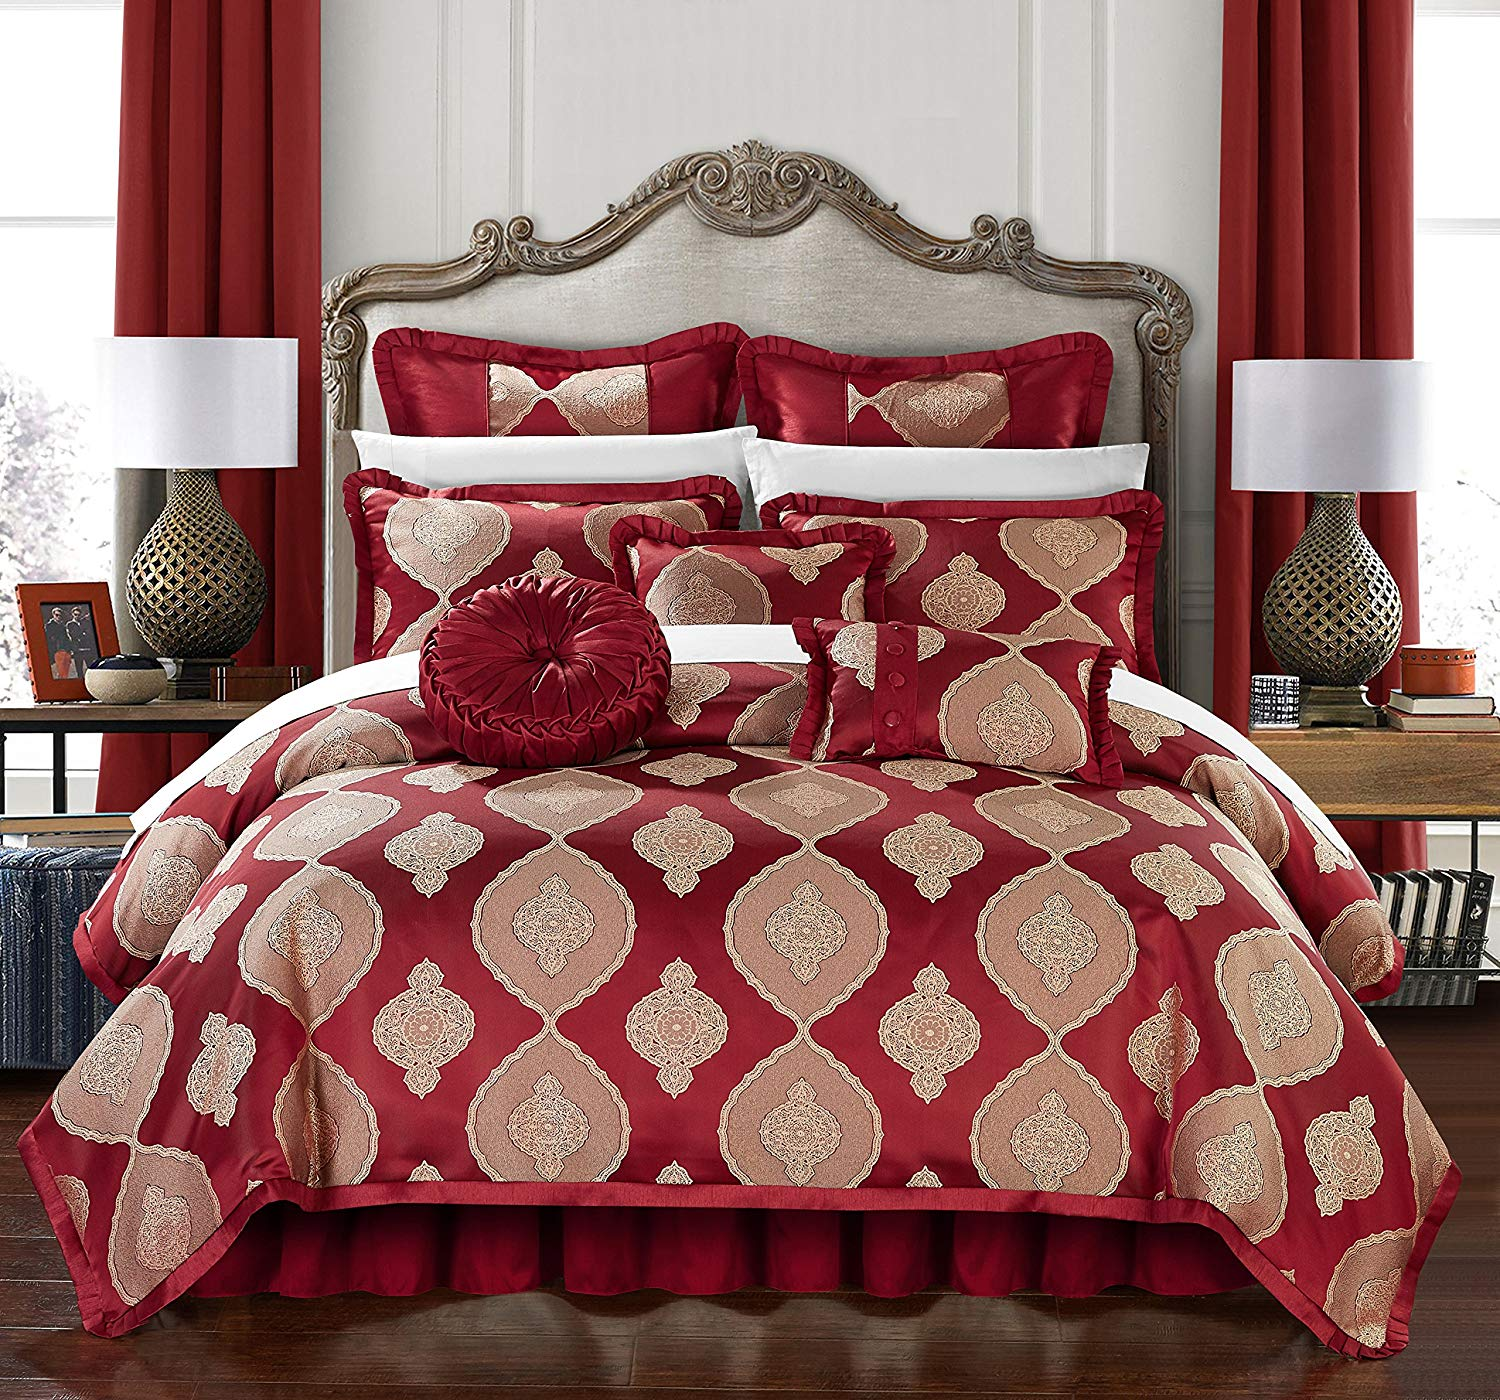 Chic Home Jamay 9 Piece Comforter Set Jacquard Scroll Faux Silk Bedding with Pleated Flange - Bed Skirt Decorative Pillows Shams Included, King Red